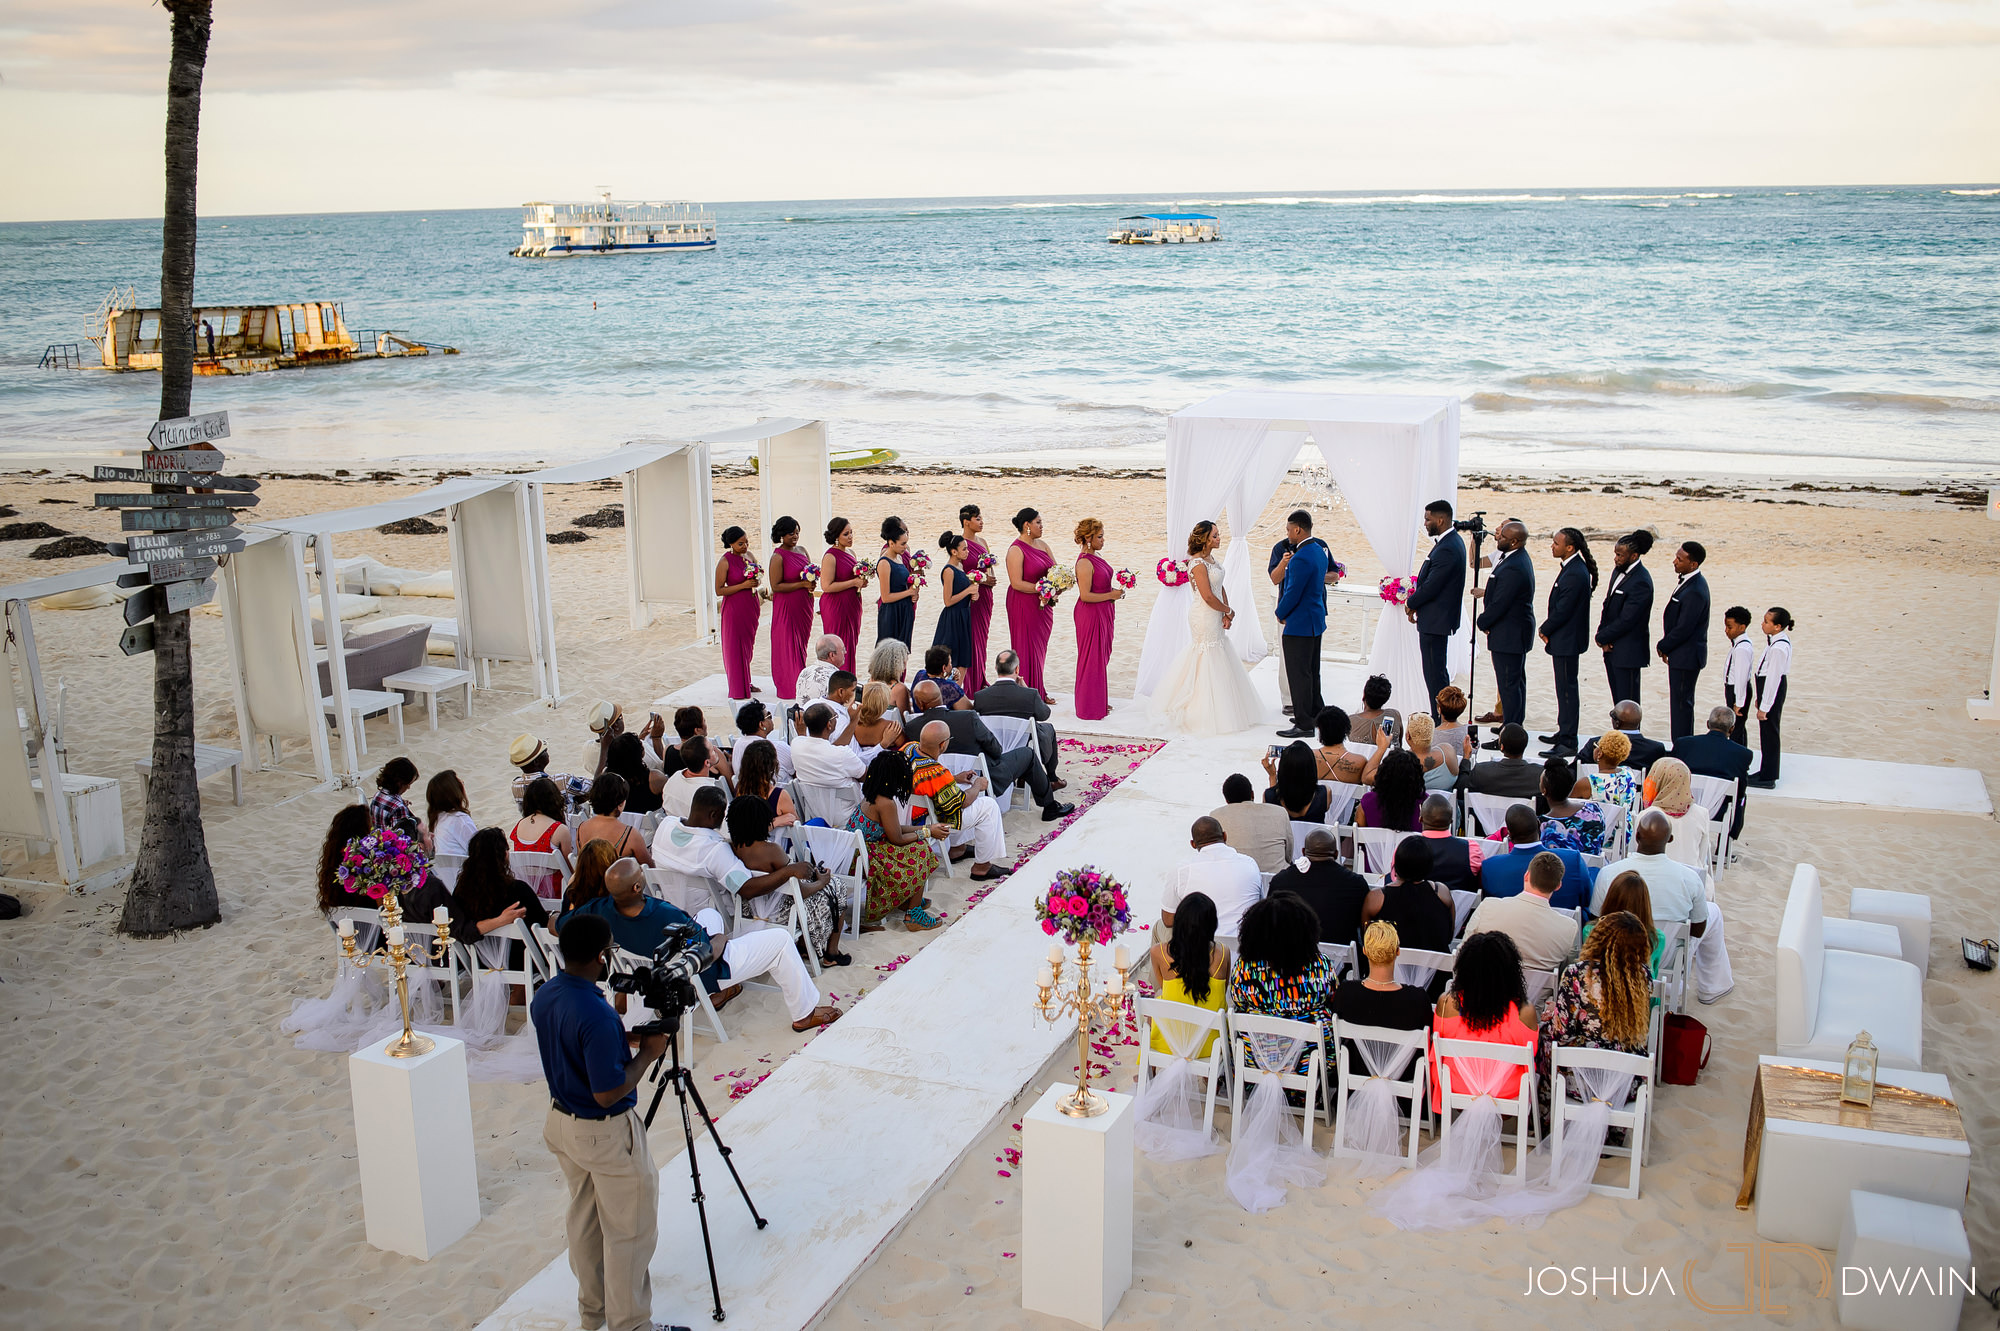 Chanel & Amir's Wedding at the Huracan Restaurant in Punta Cana, DR